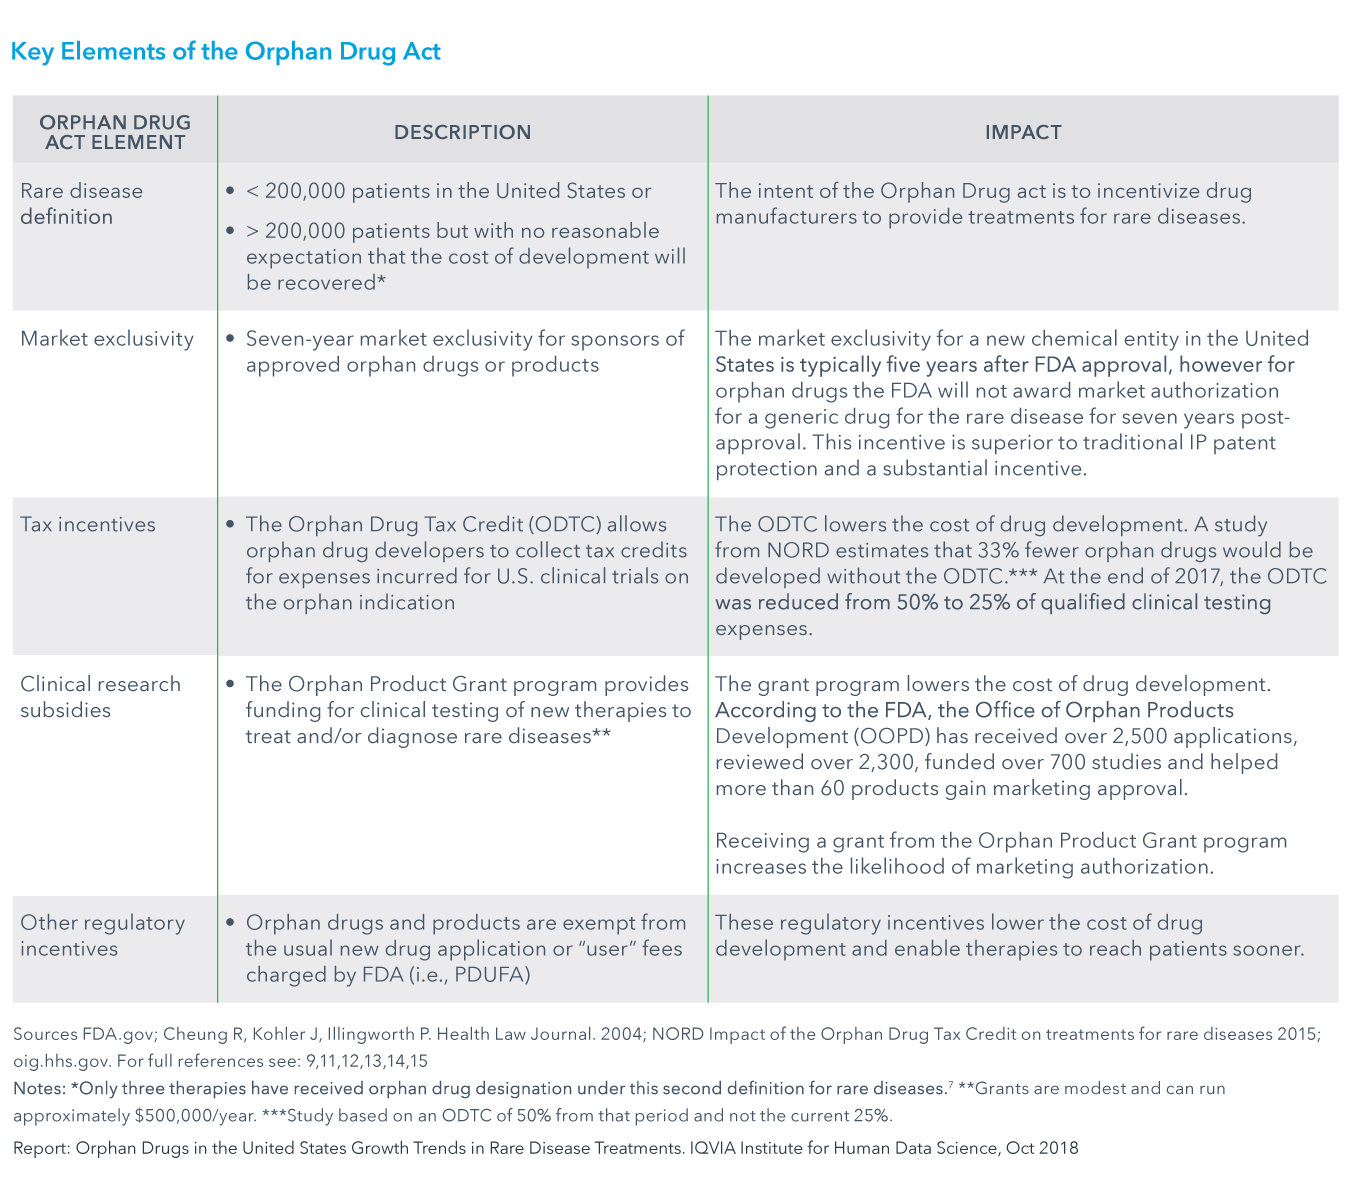 Chart 2: Key Elements of the Orphan Drug Act